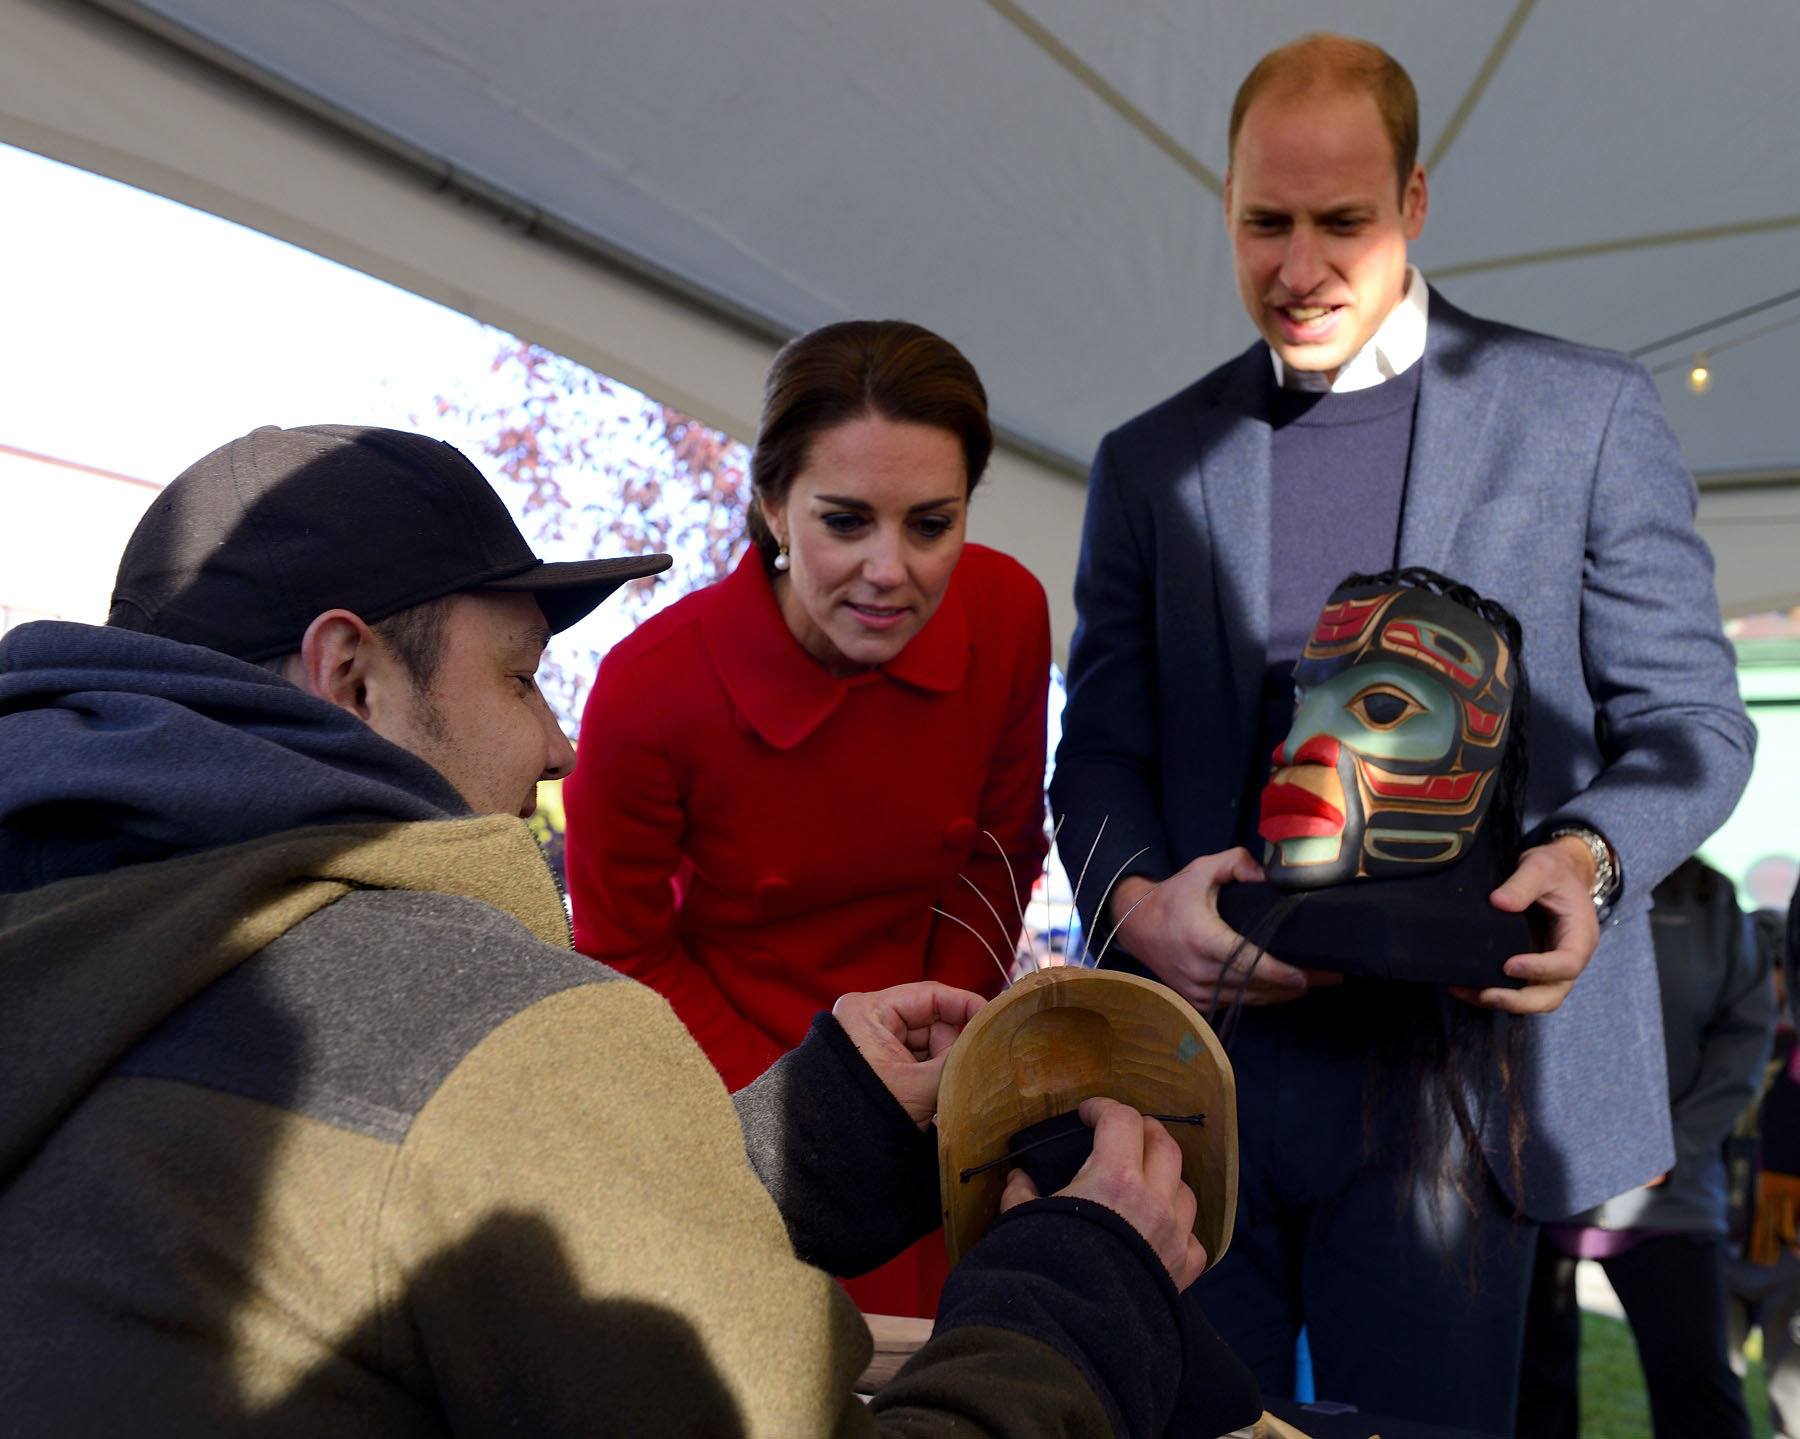 Their Royal Highnesses met with a young carver.